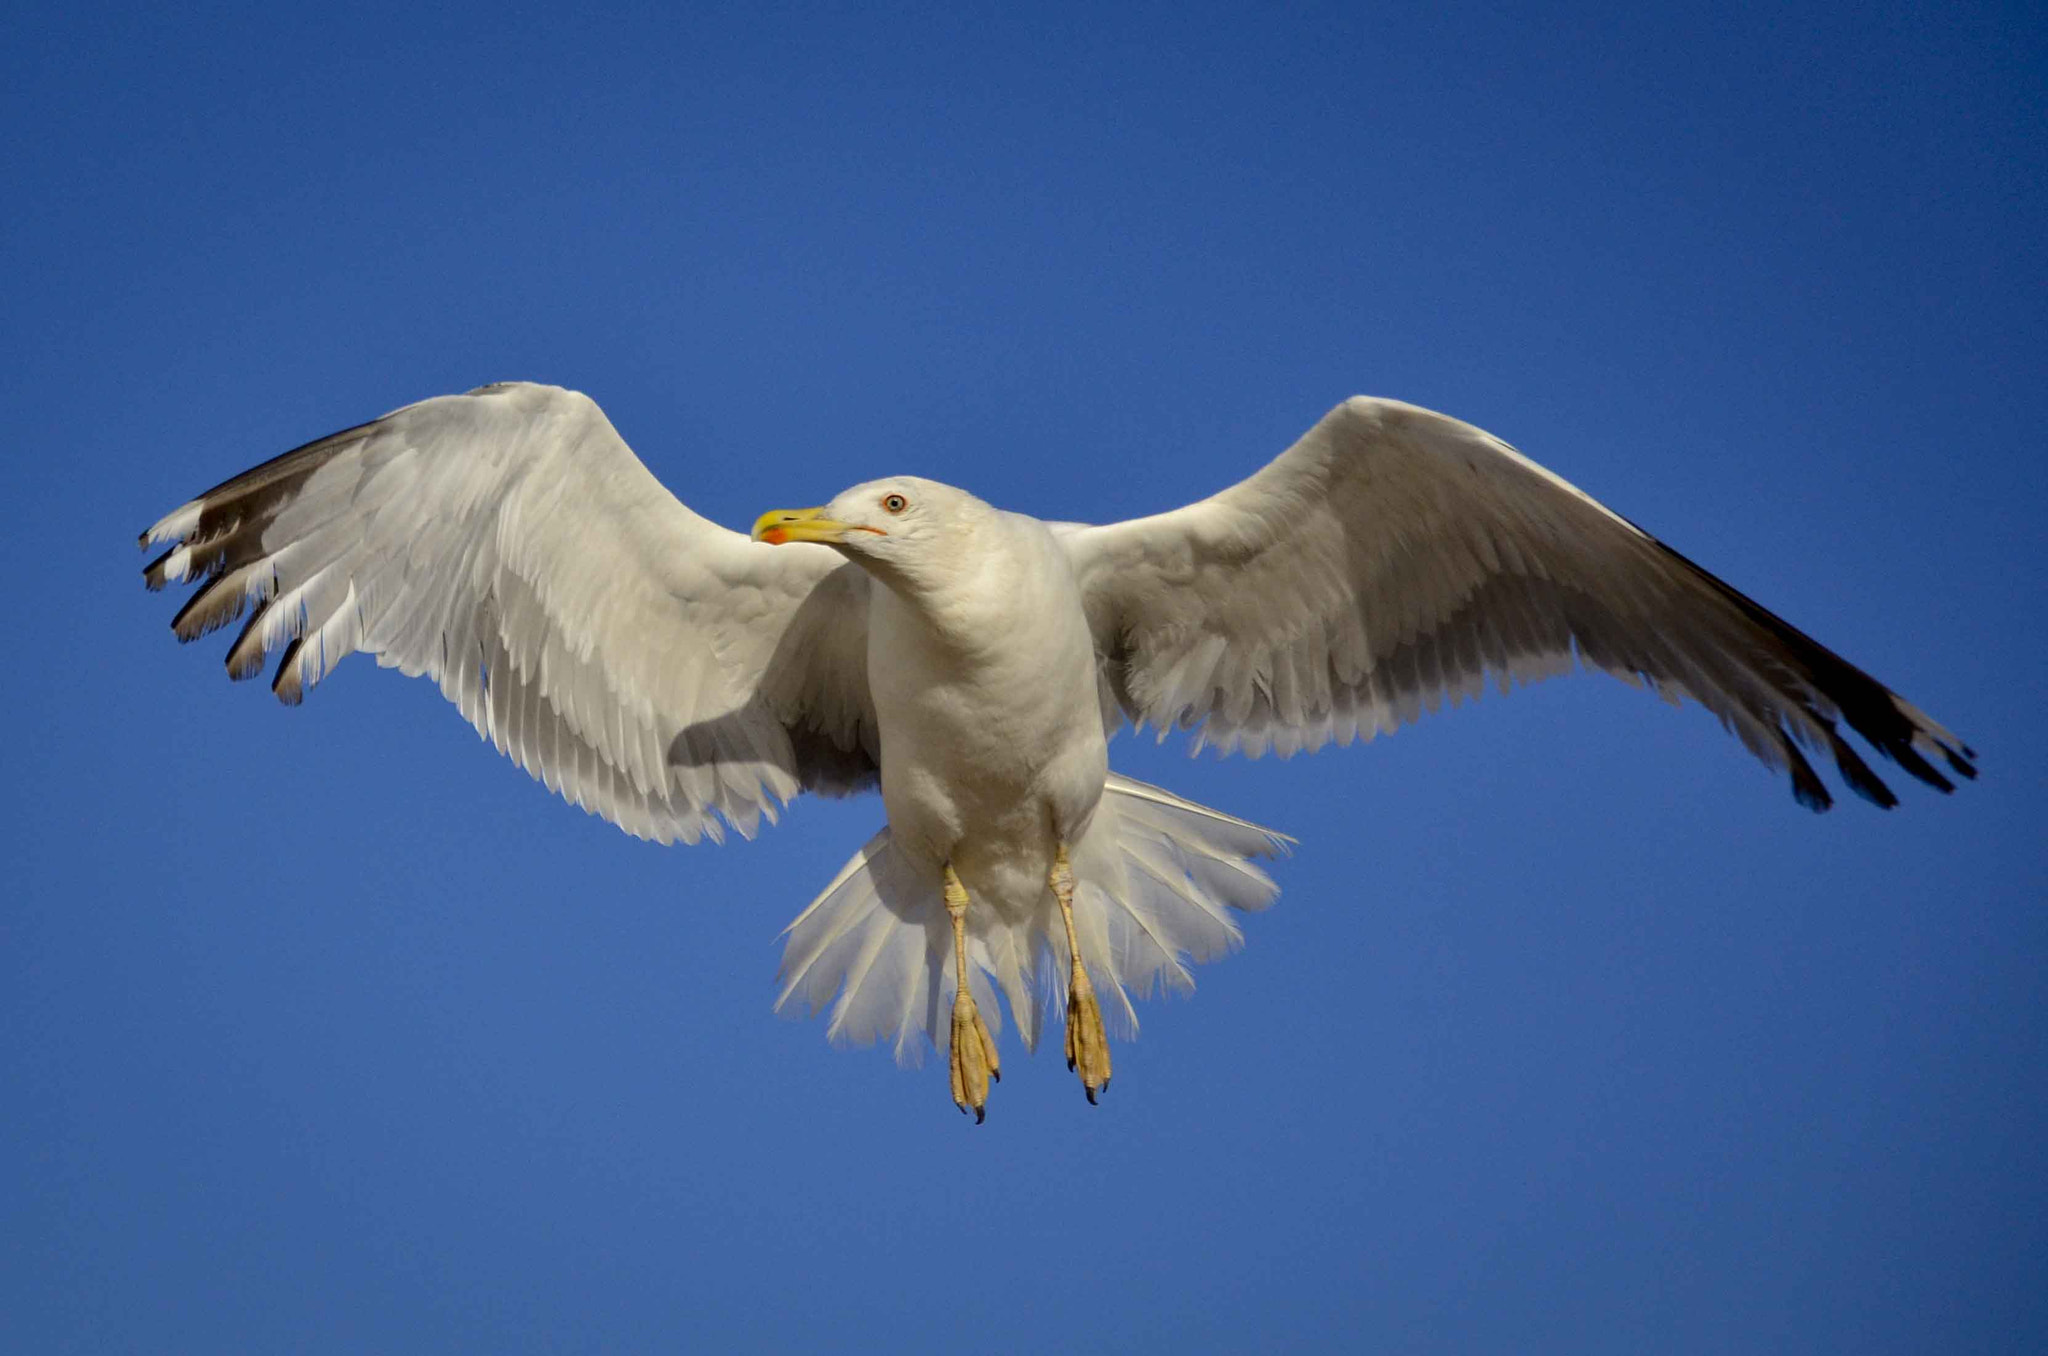 Photograph gaviota by Miguel Bustos on 500px